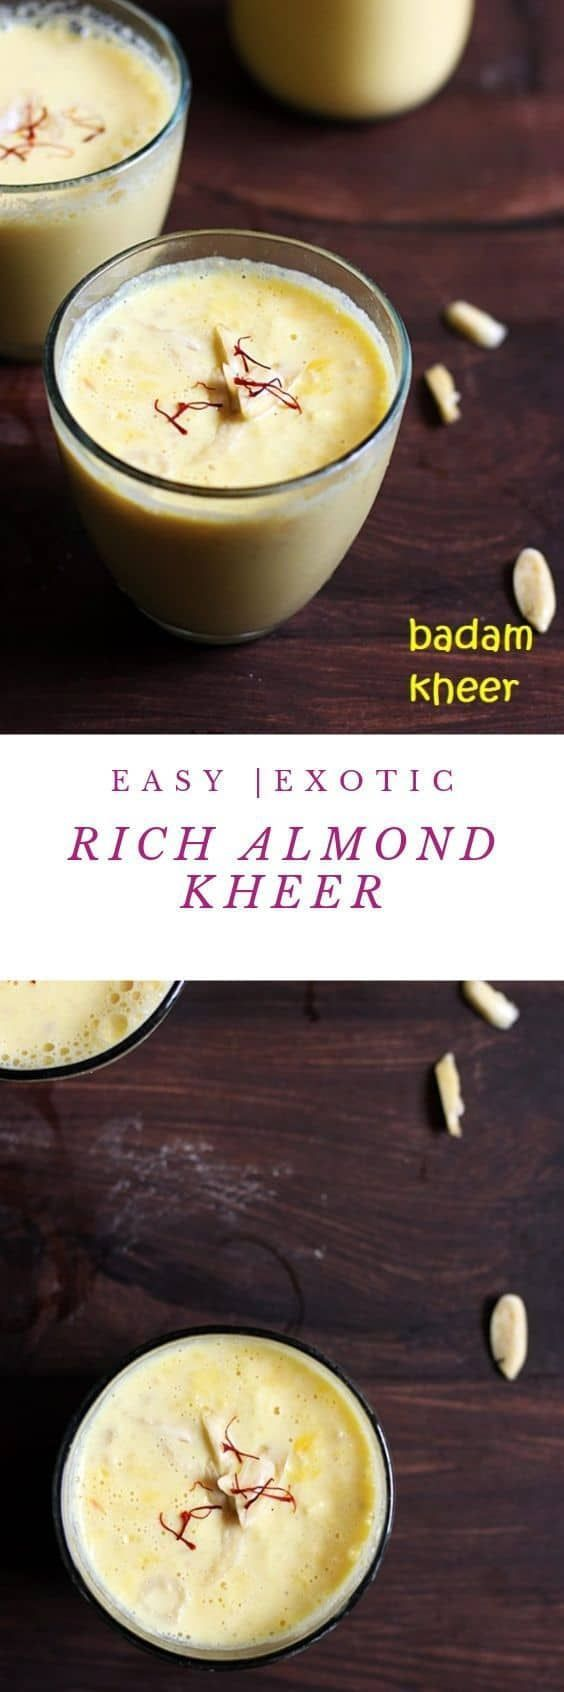 Badam Kheer Recipe How To Make Badam Kheer Recipe With Step By Step Photos A Creamy And Rich Indian Kheer Recipe Made Kheer Recipe Recipes Impressive Recipes